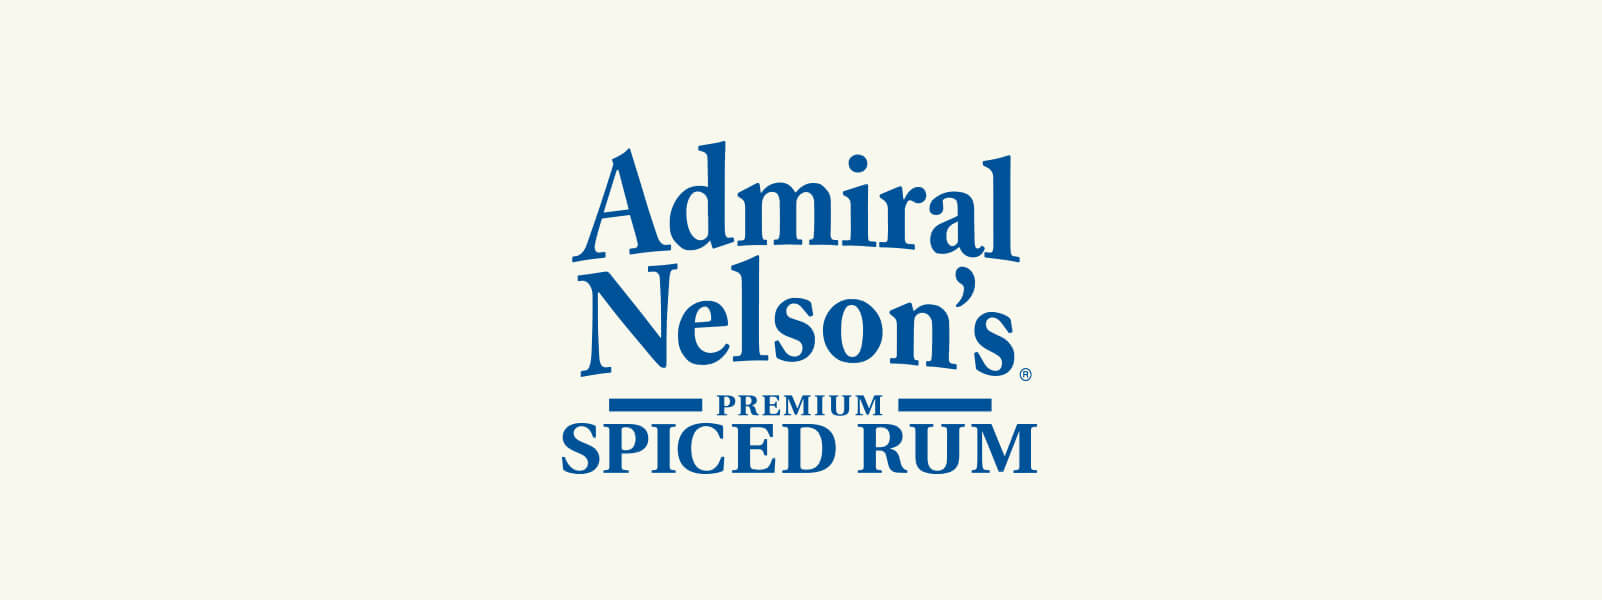 admiral-nelsons-header